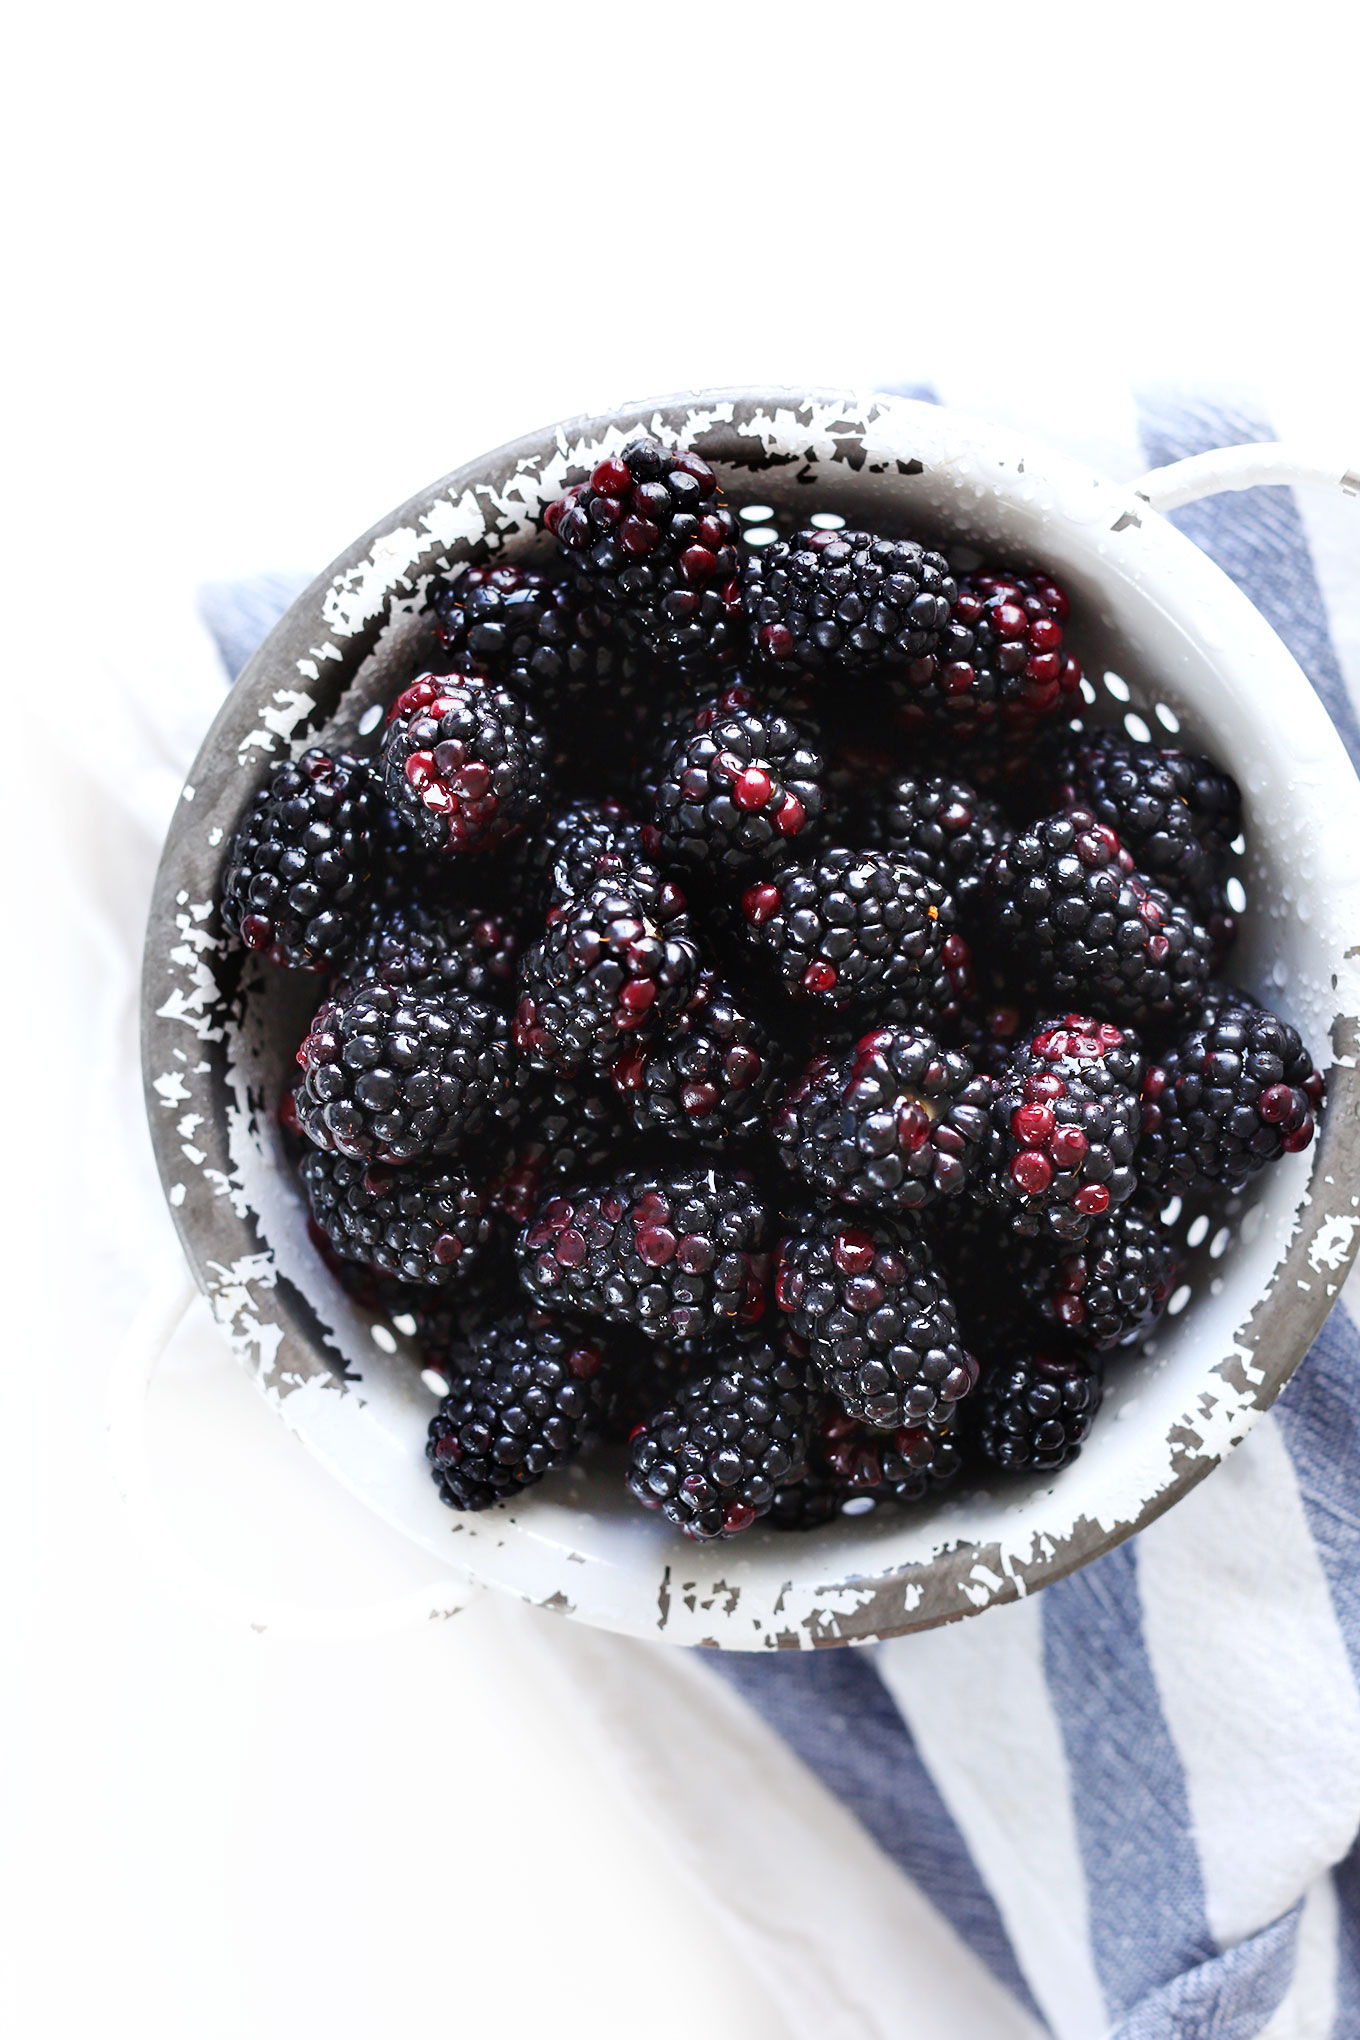 Freshly washed blackberries for making homemade gluten-free vegan cobbler